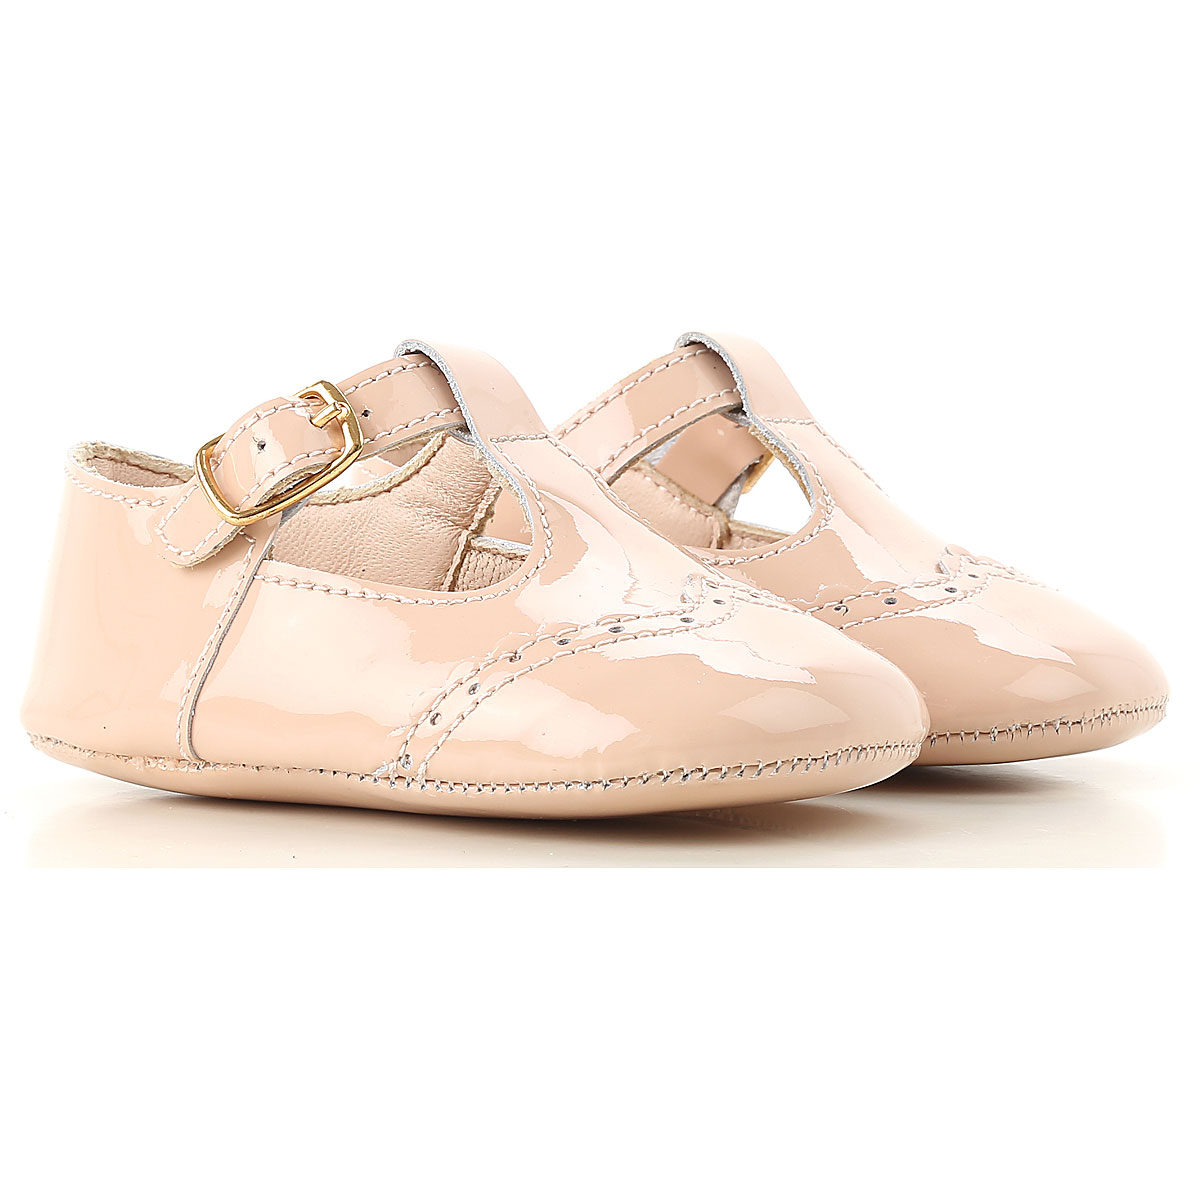 Image of Chloe Baby Shoes for Girls, Nude Pink, Patent Leather, 2017, 17 18